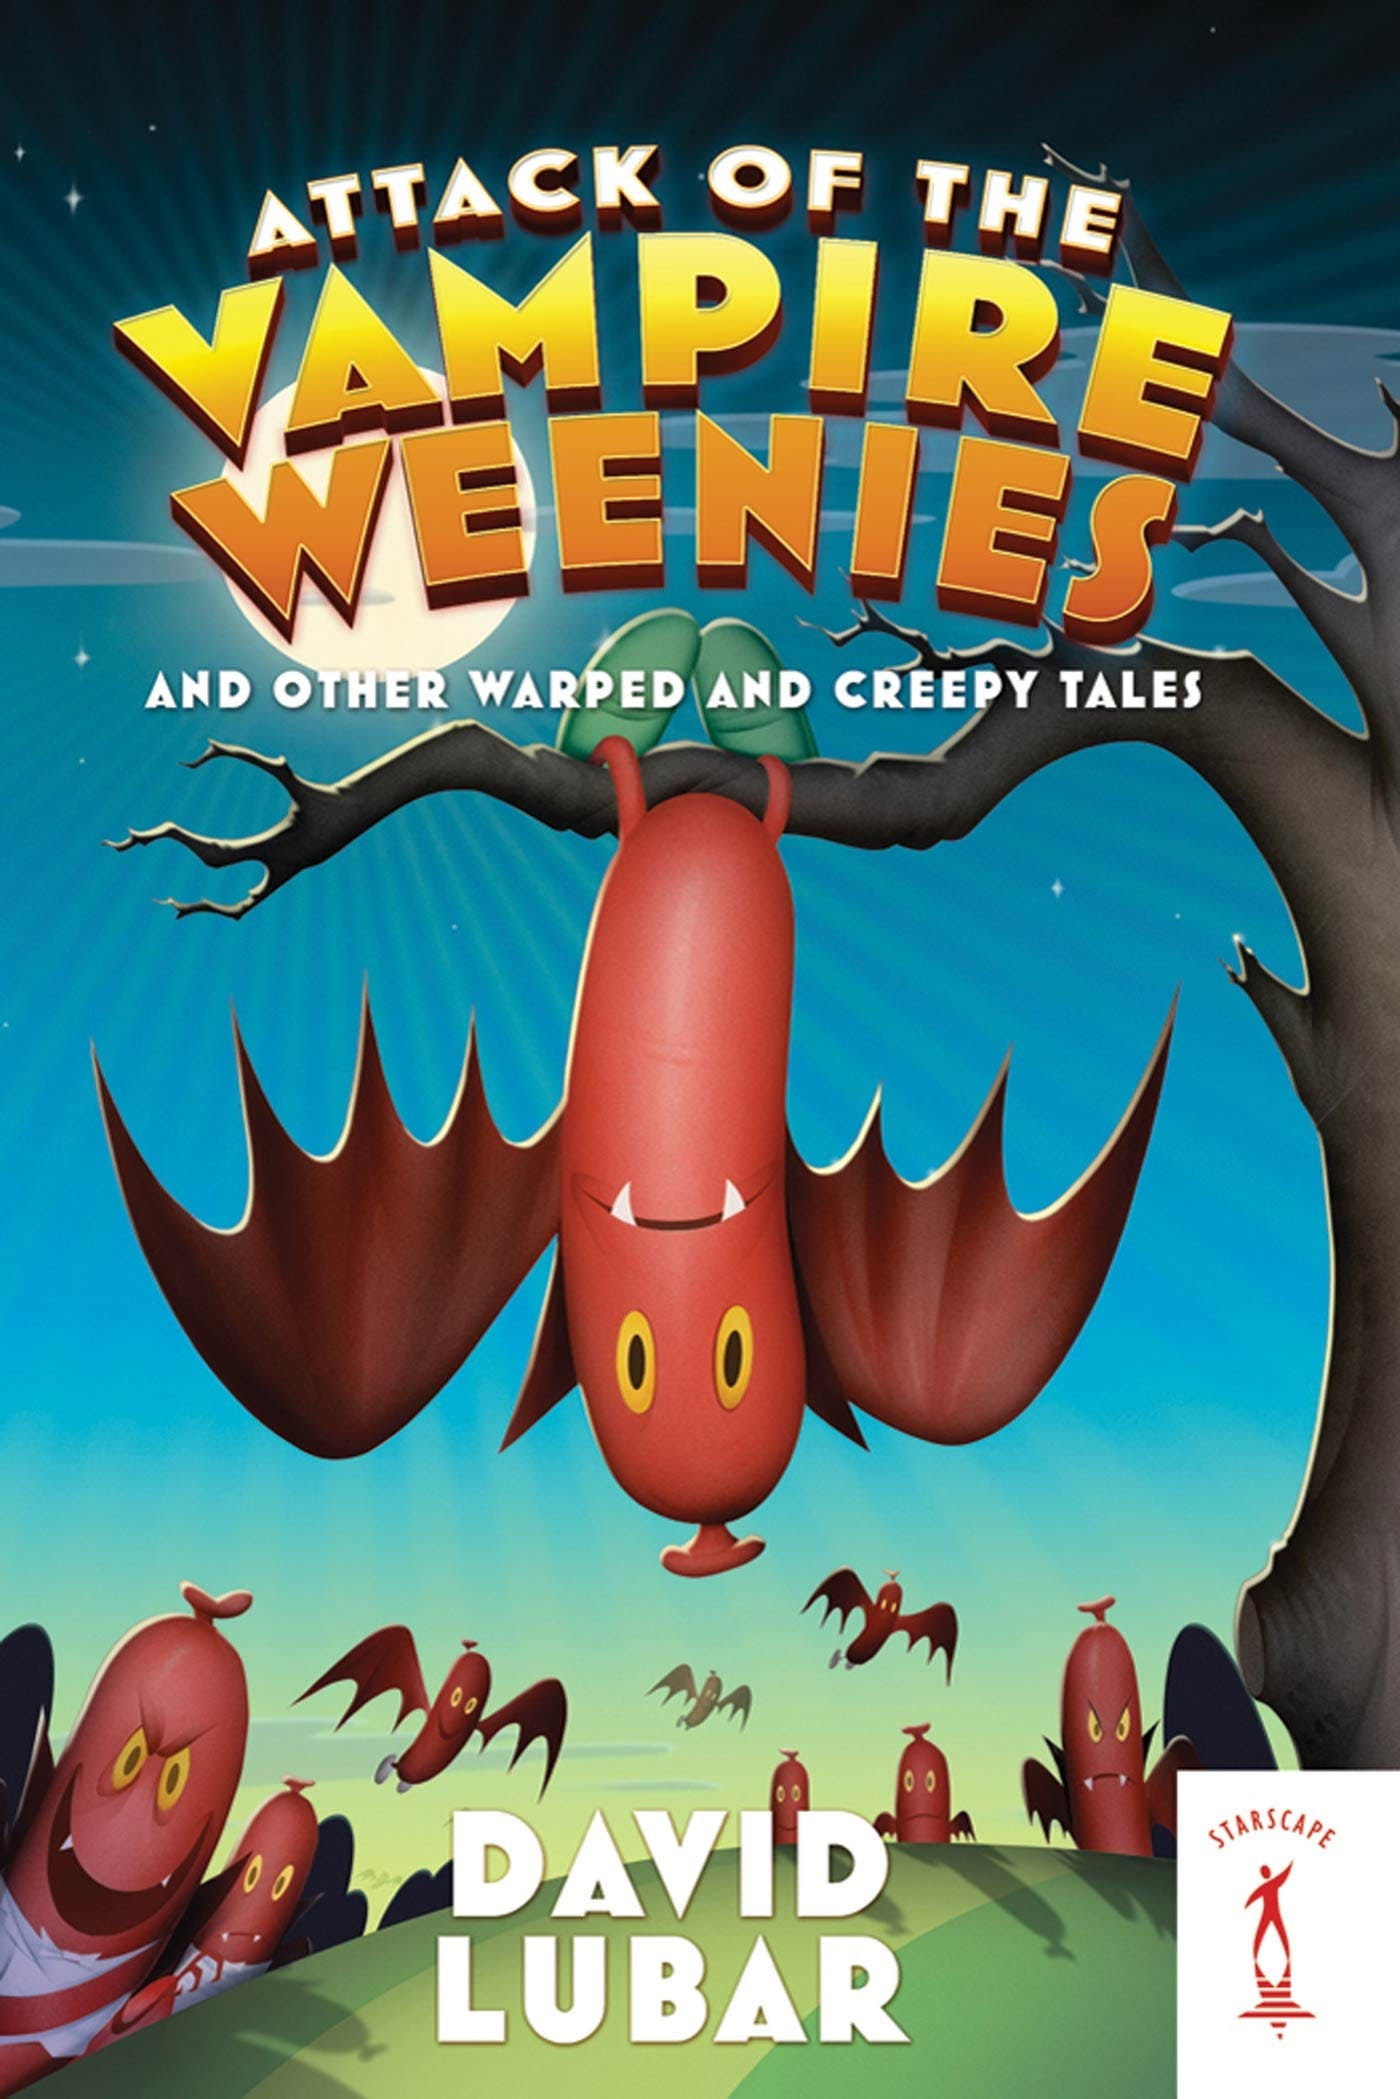 Image of Attack of the Vampire Weenies